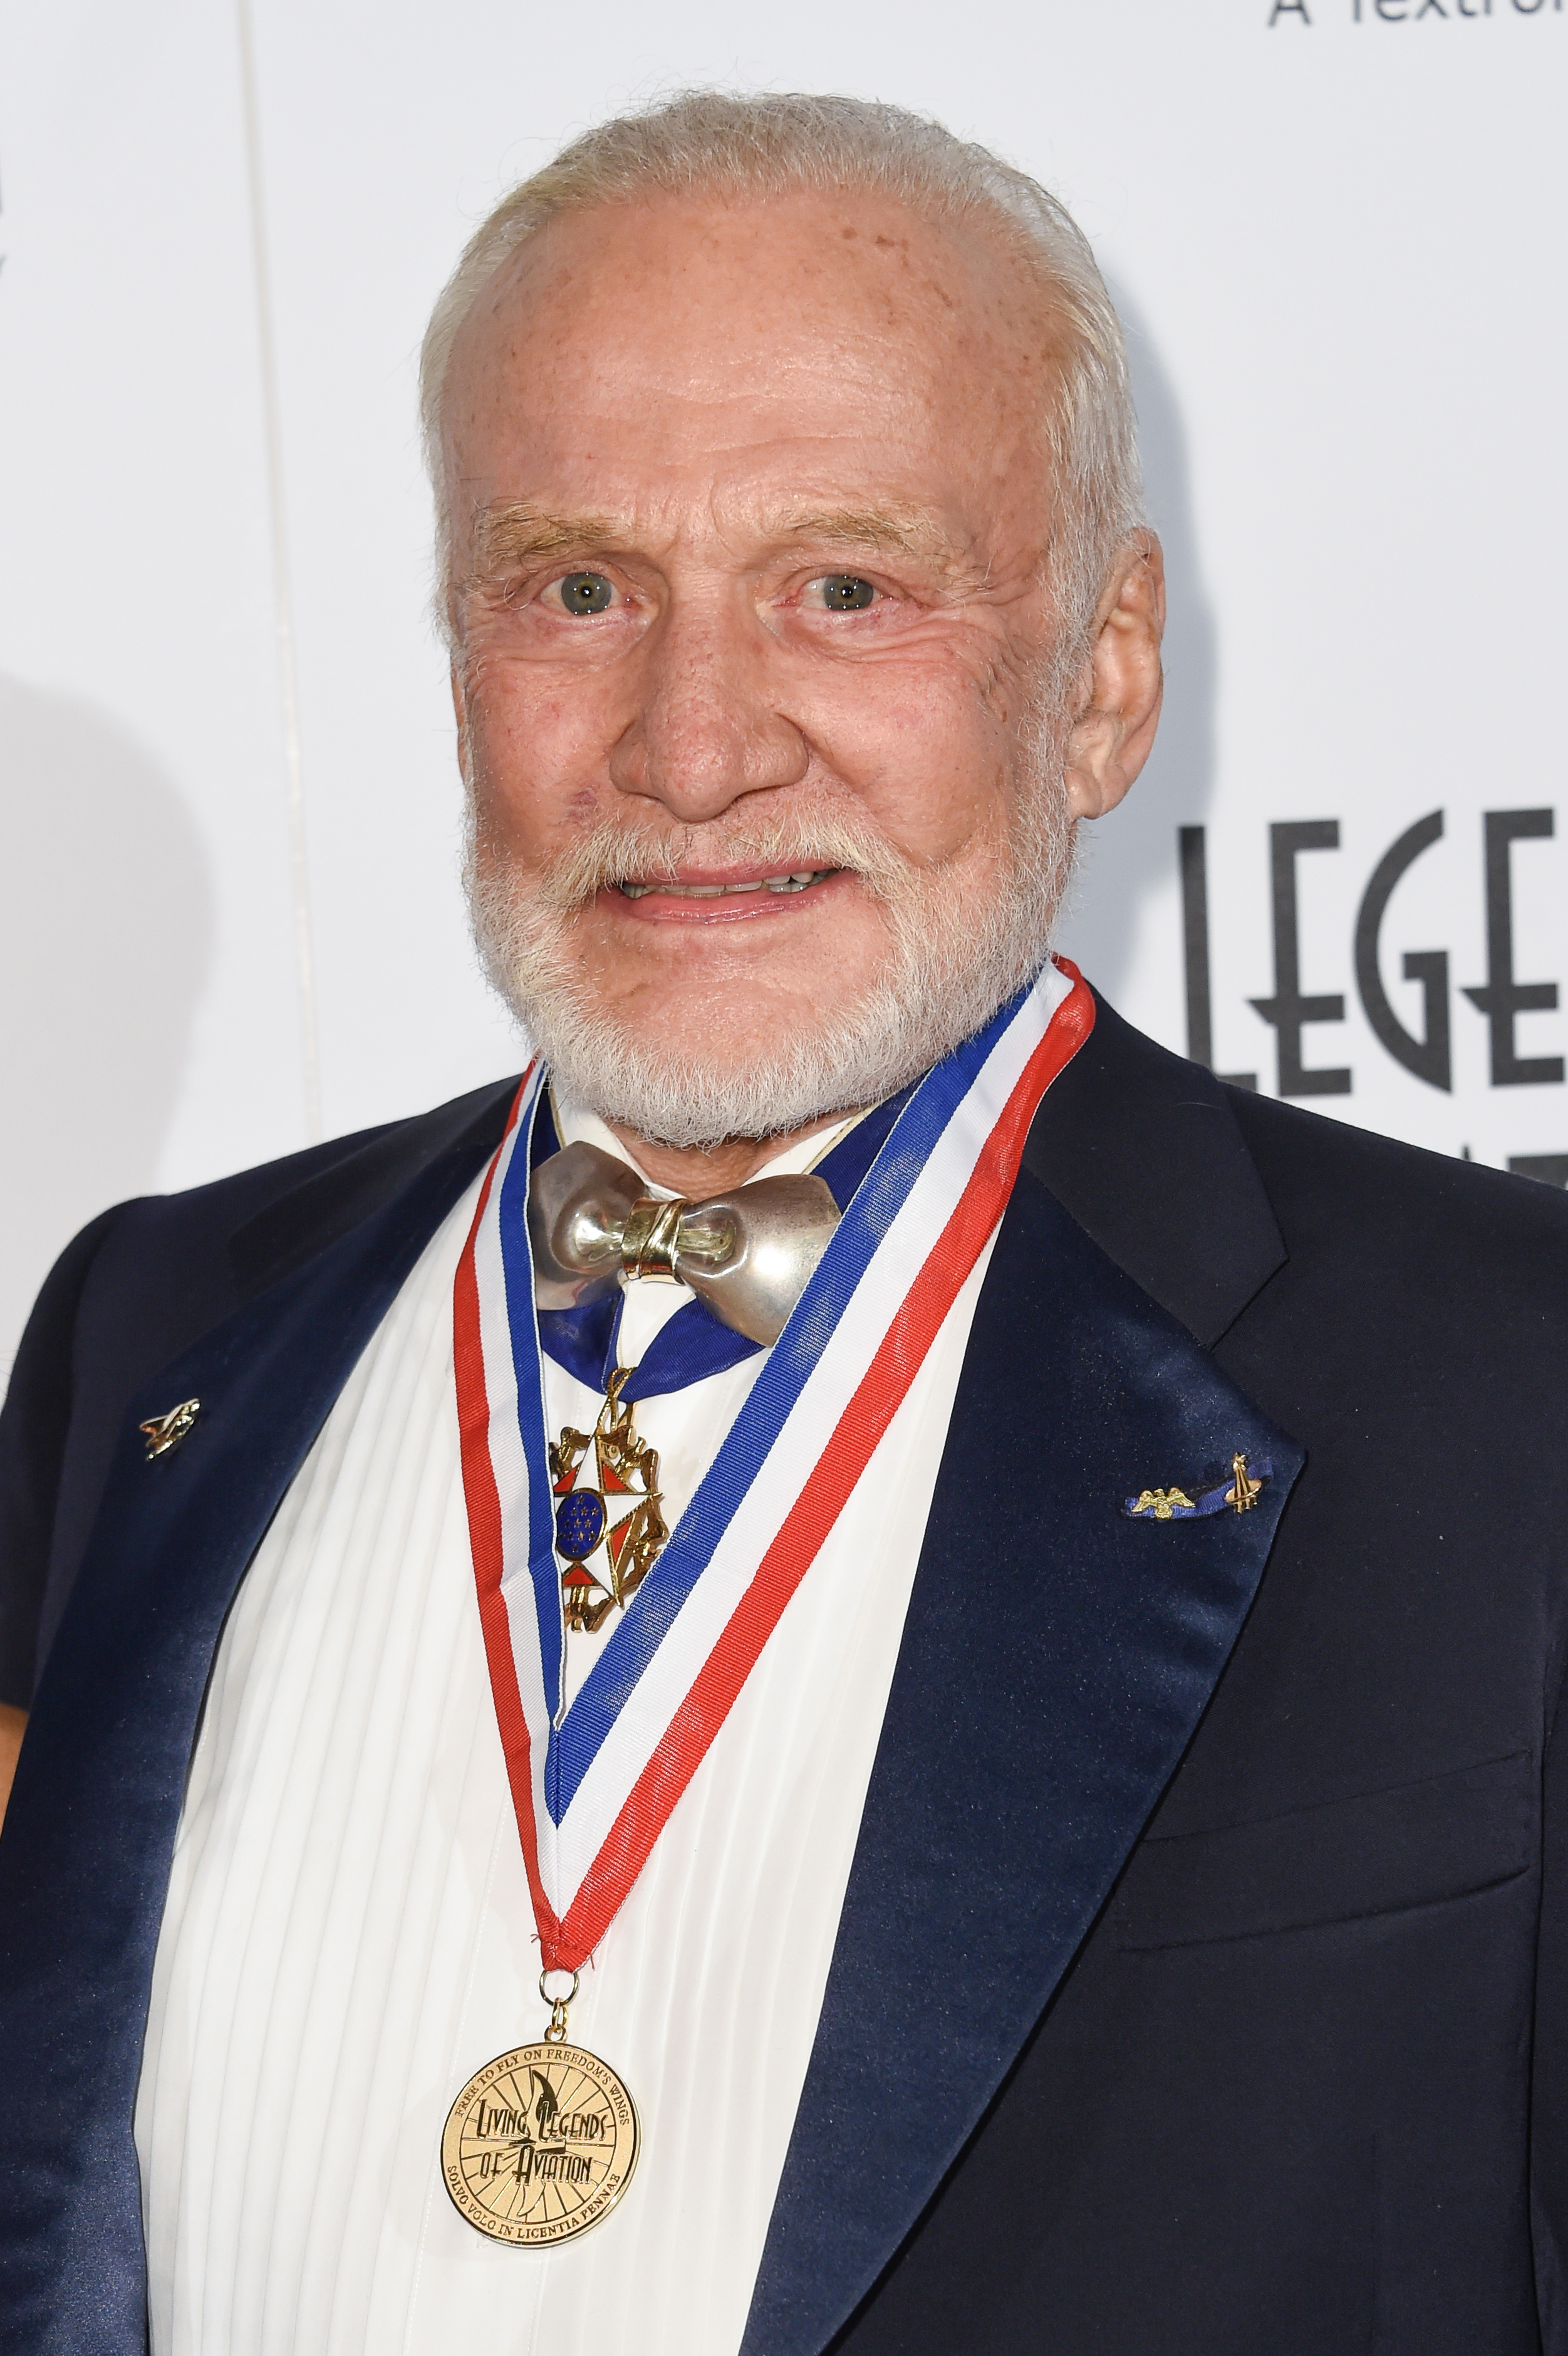 Buzz Aldrin attends the 12th Annual Living Legends of Aviation Awards at The Beverly Hilton Hotel in Los Angeles on Friday, Jan 16, 2015.